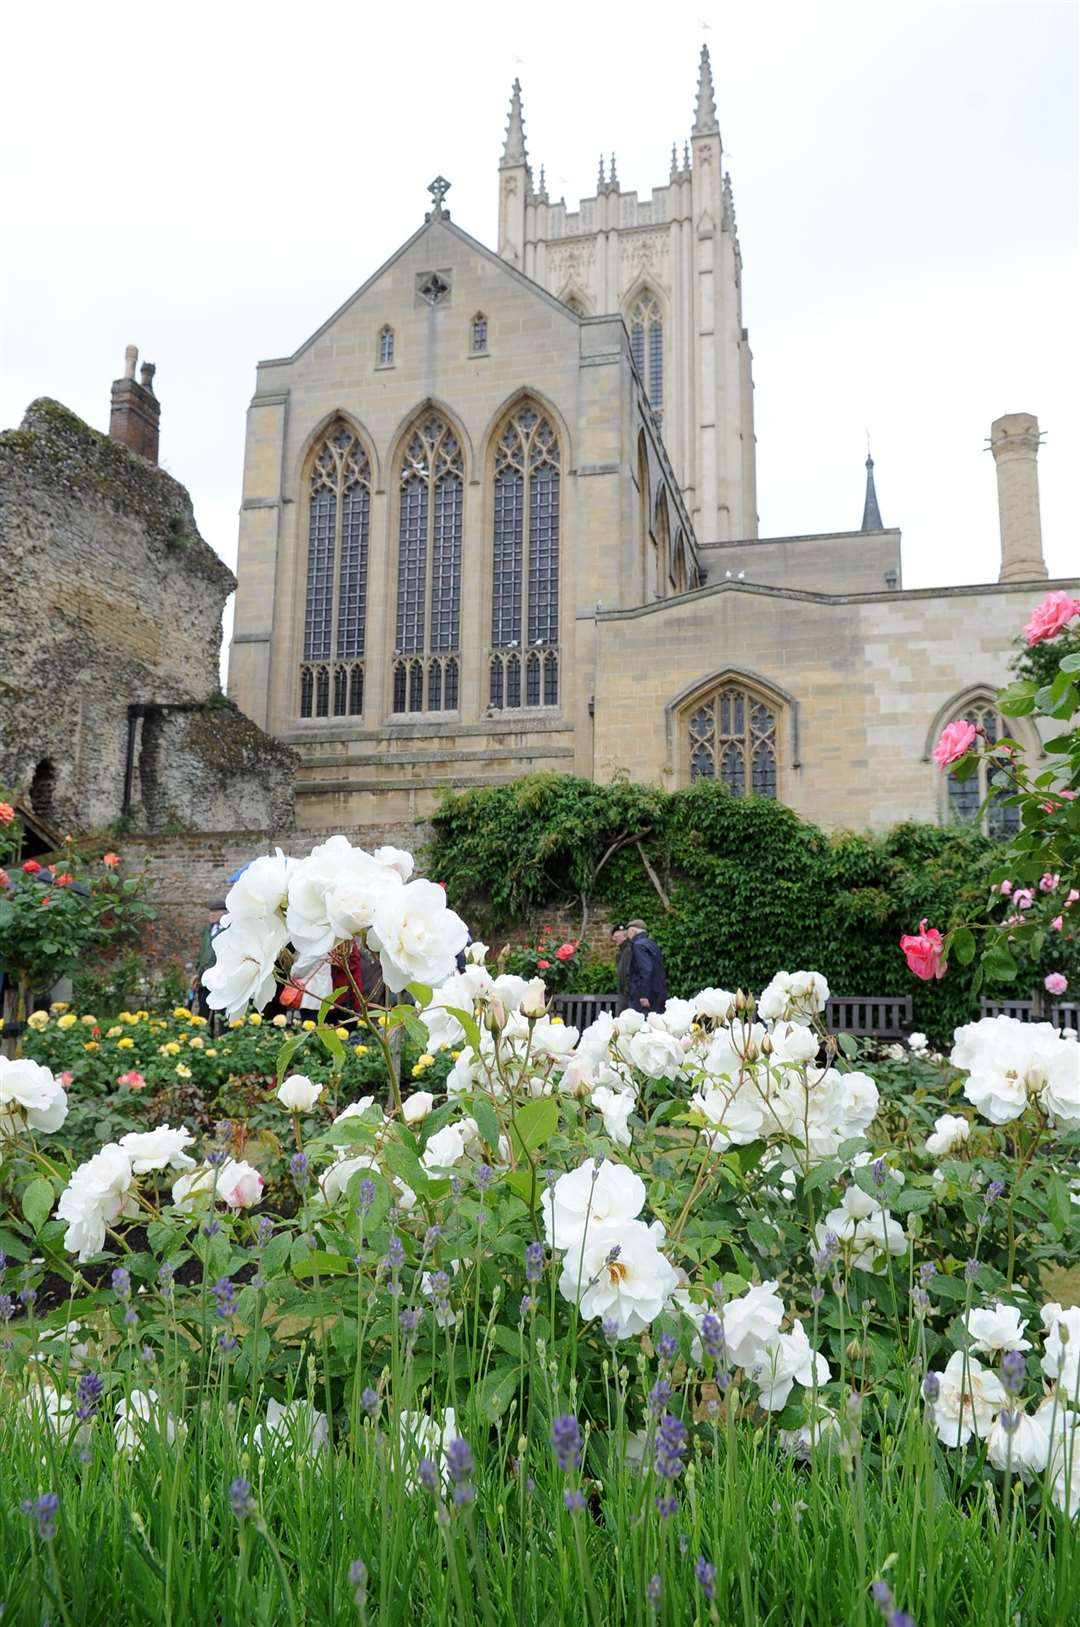 The Rose Garden behind St Edmundsbury Cathedral